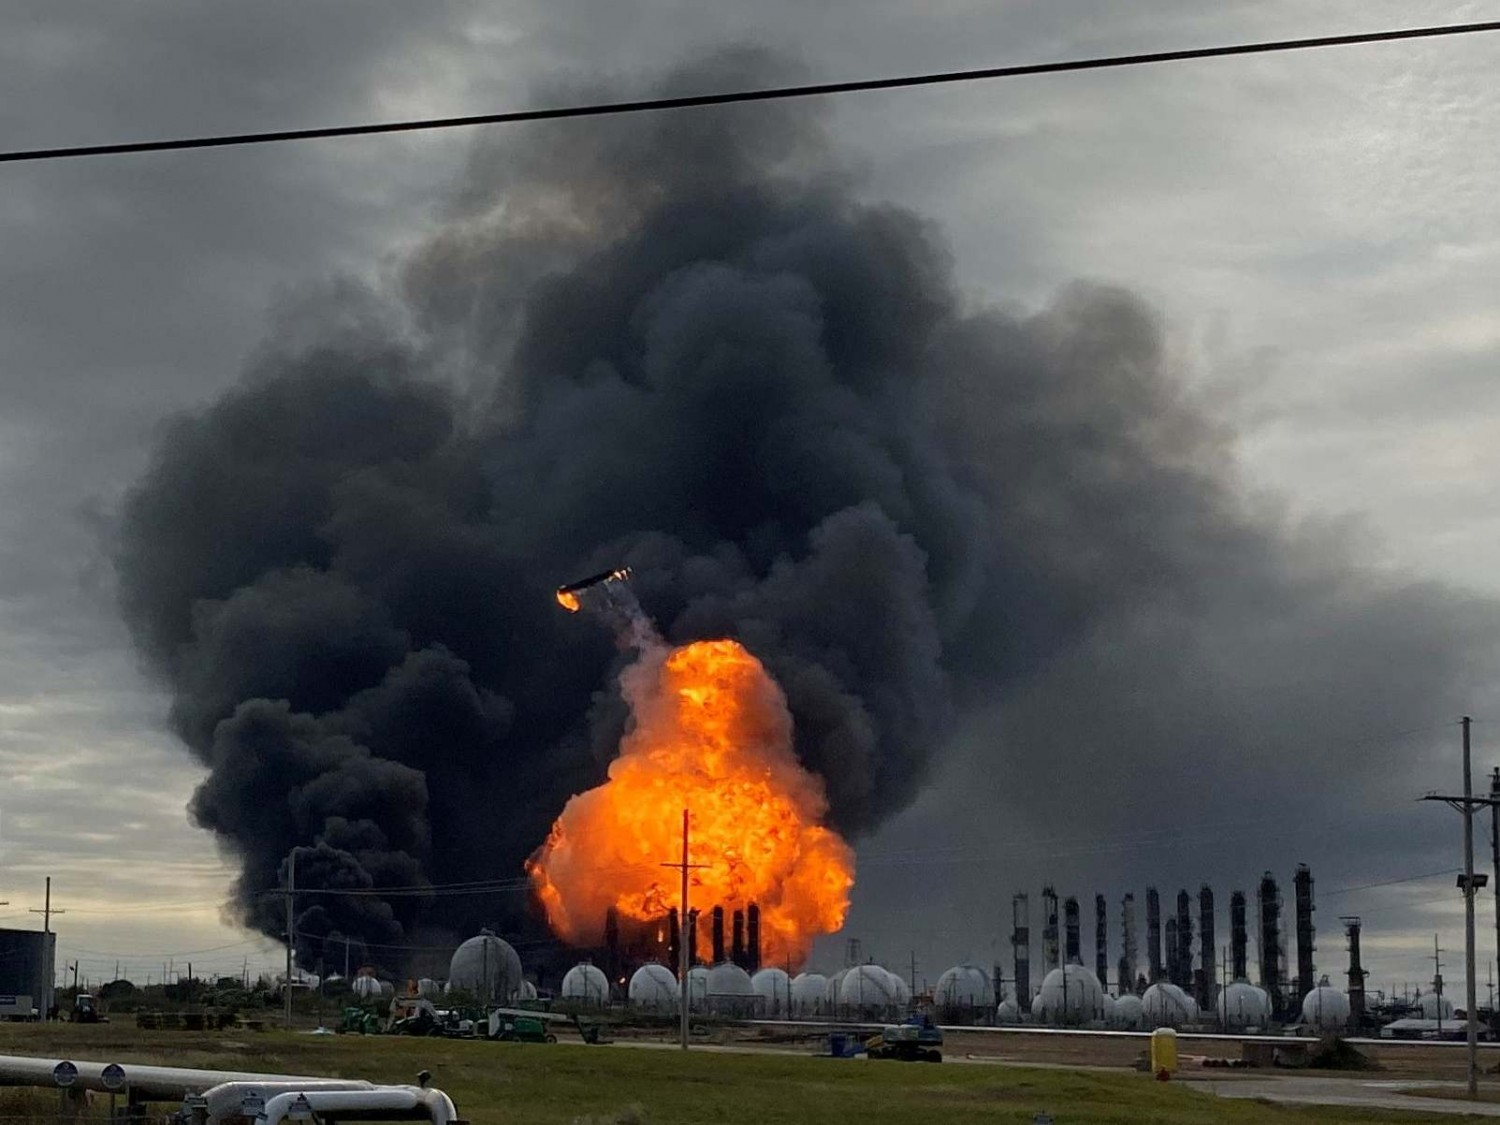 USA – Update – Firefighters Contain The Blaze At Texas Chemical Plant – Video